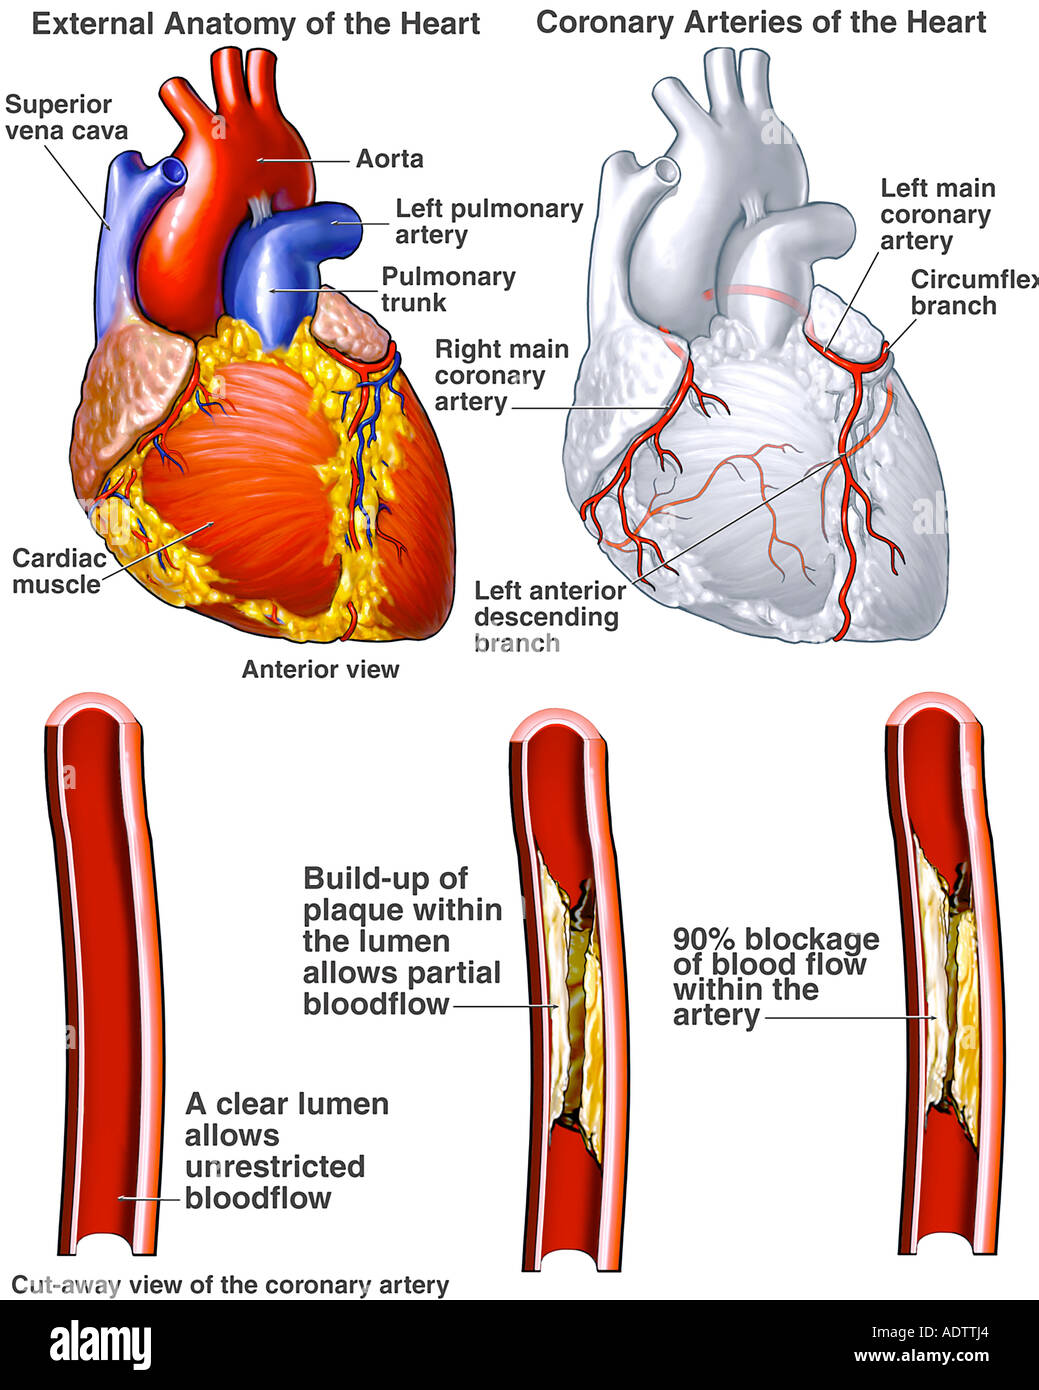 Heart - Coronary Arteries with Potential Blockages - Stock Image